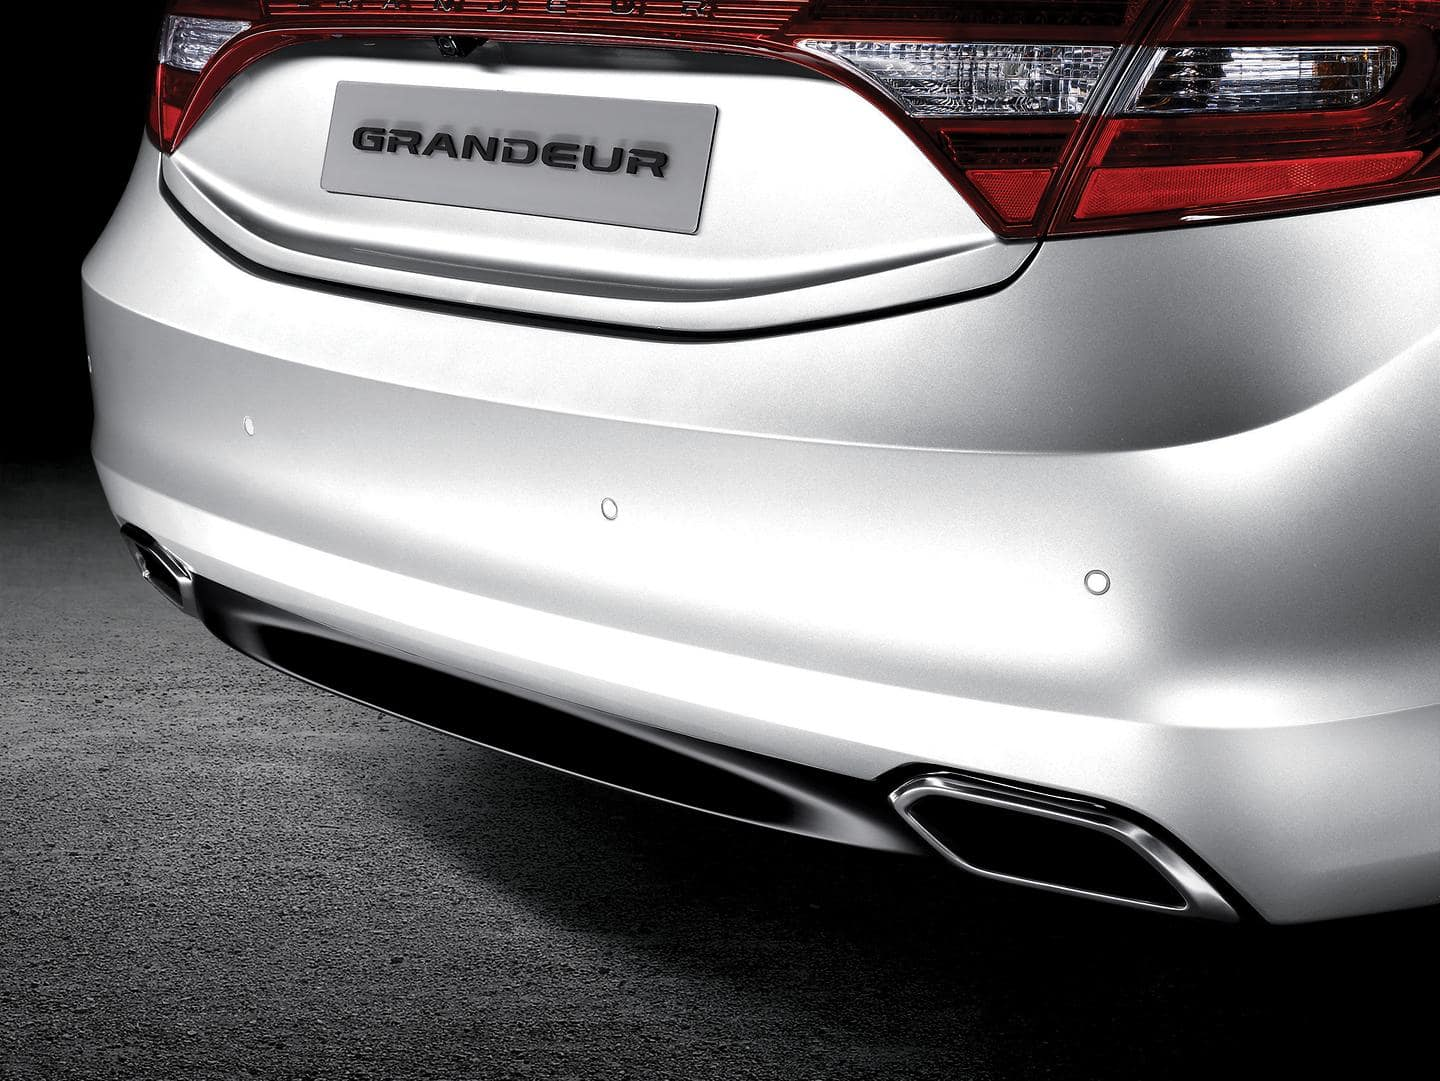 Upgraded Grandeur rear end